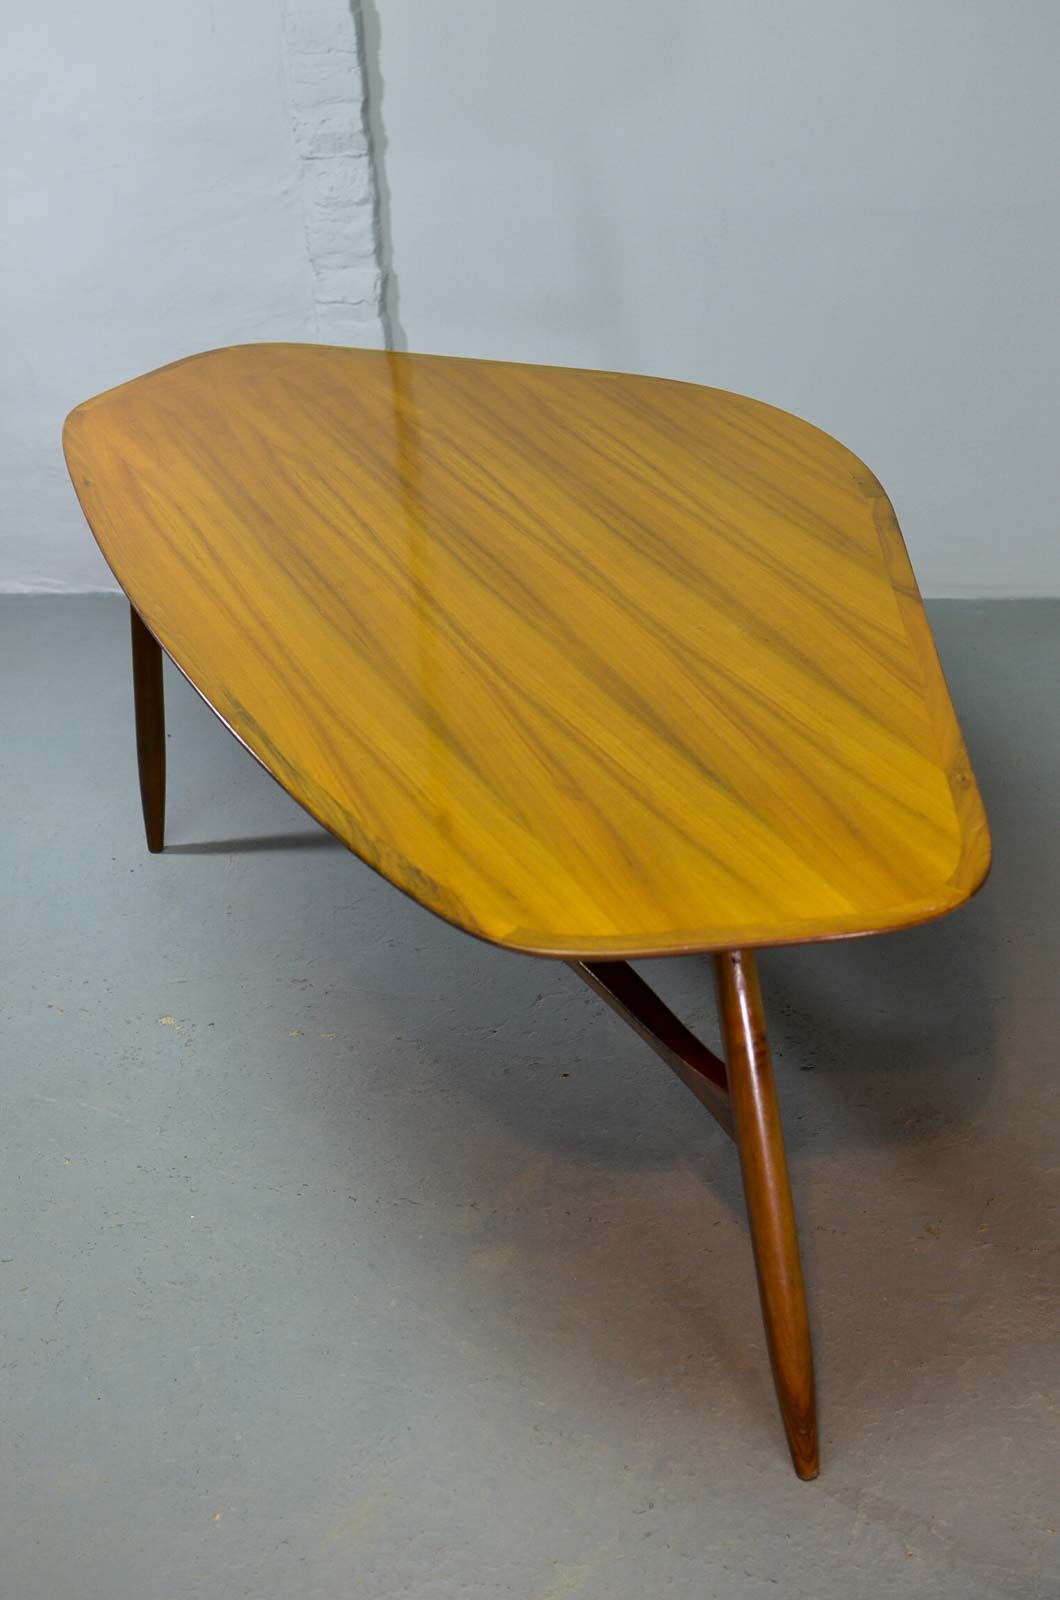 Free form wood coffee table top midcentury swedish design for Free form wood coffee tables